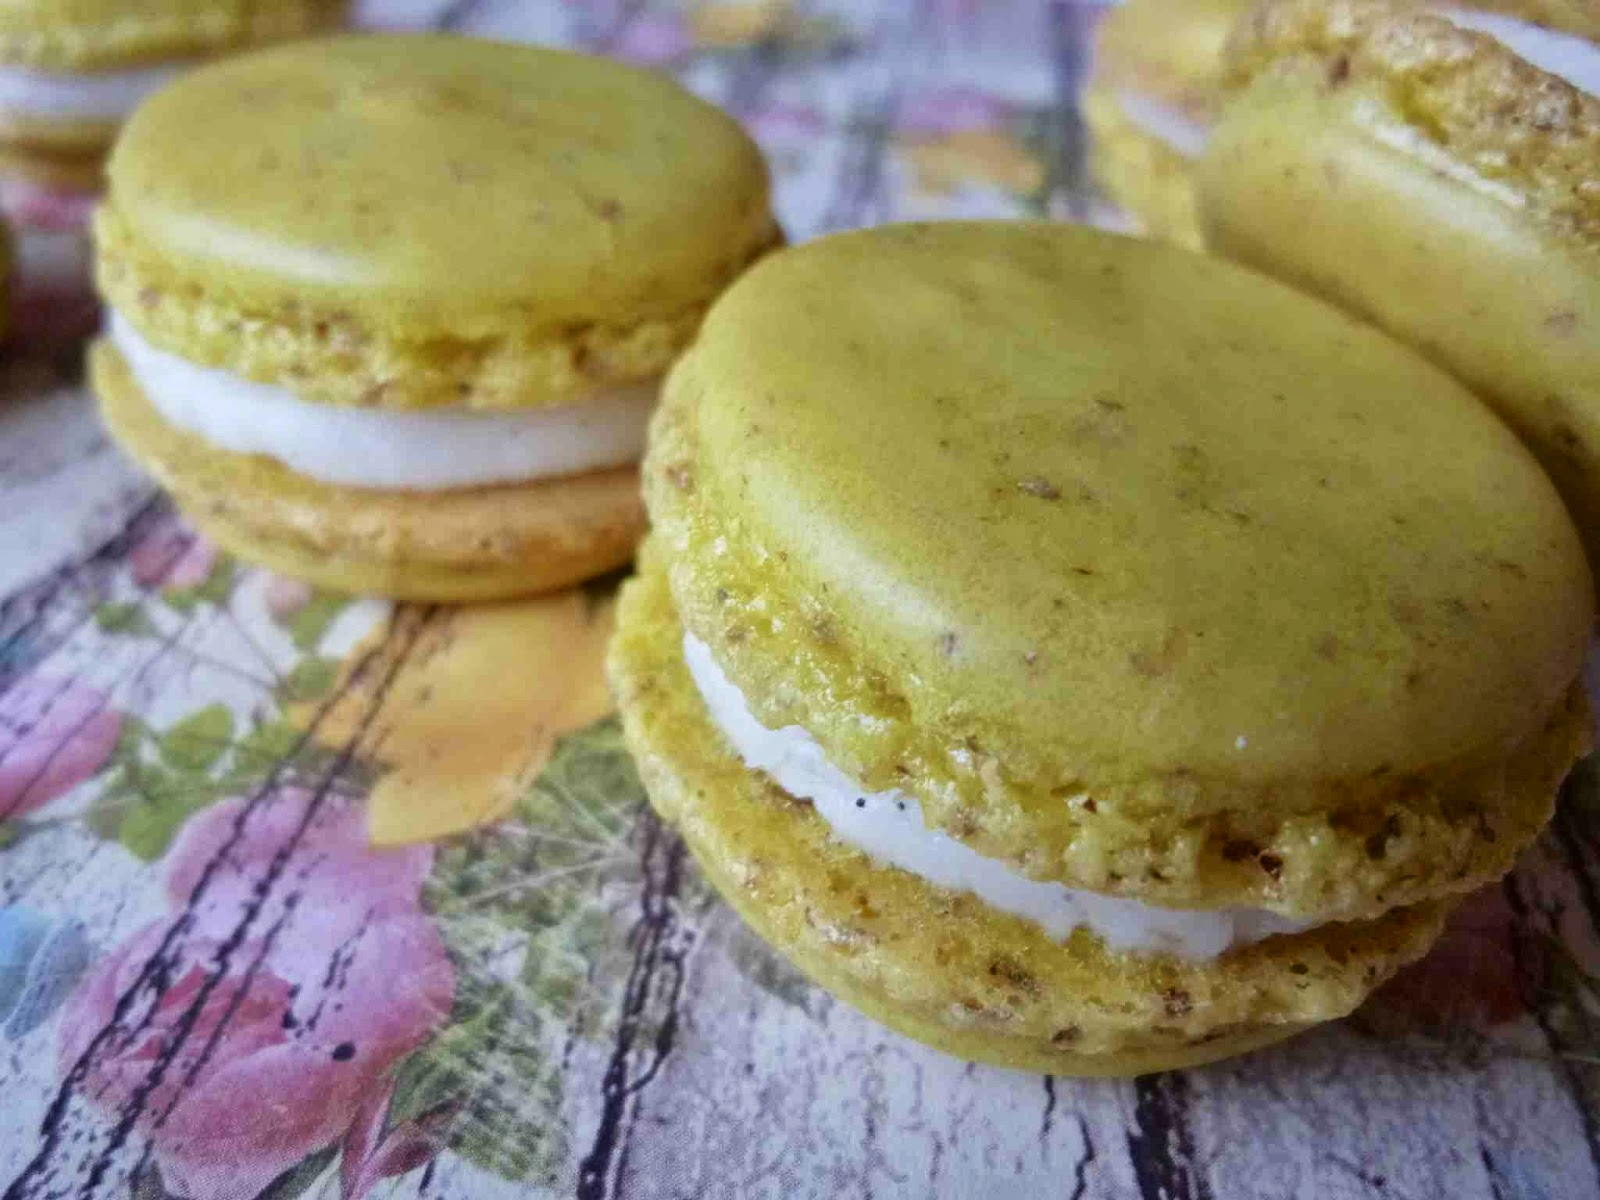 ... : Grapefruit French Macarons with Vanilla Bean Buttercream Filling